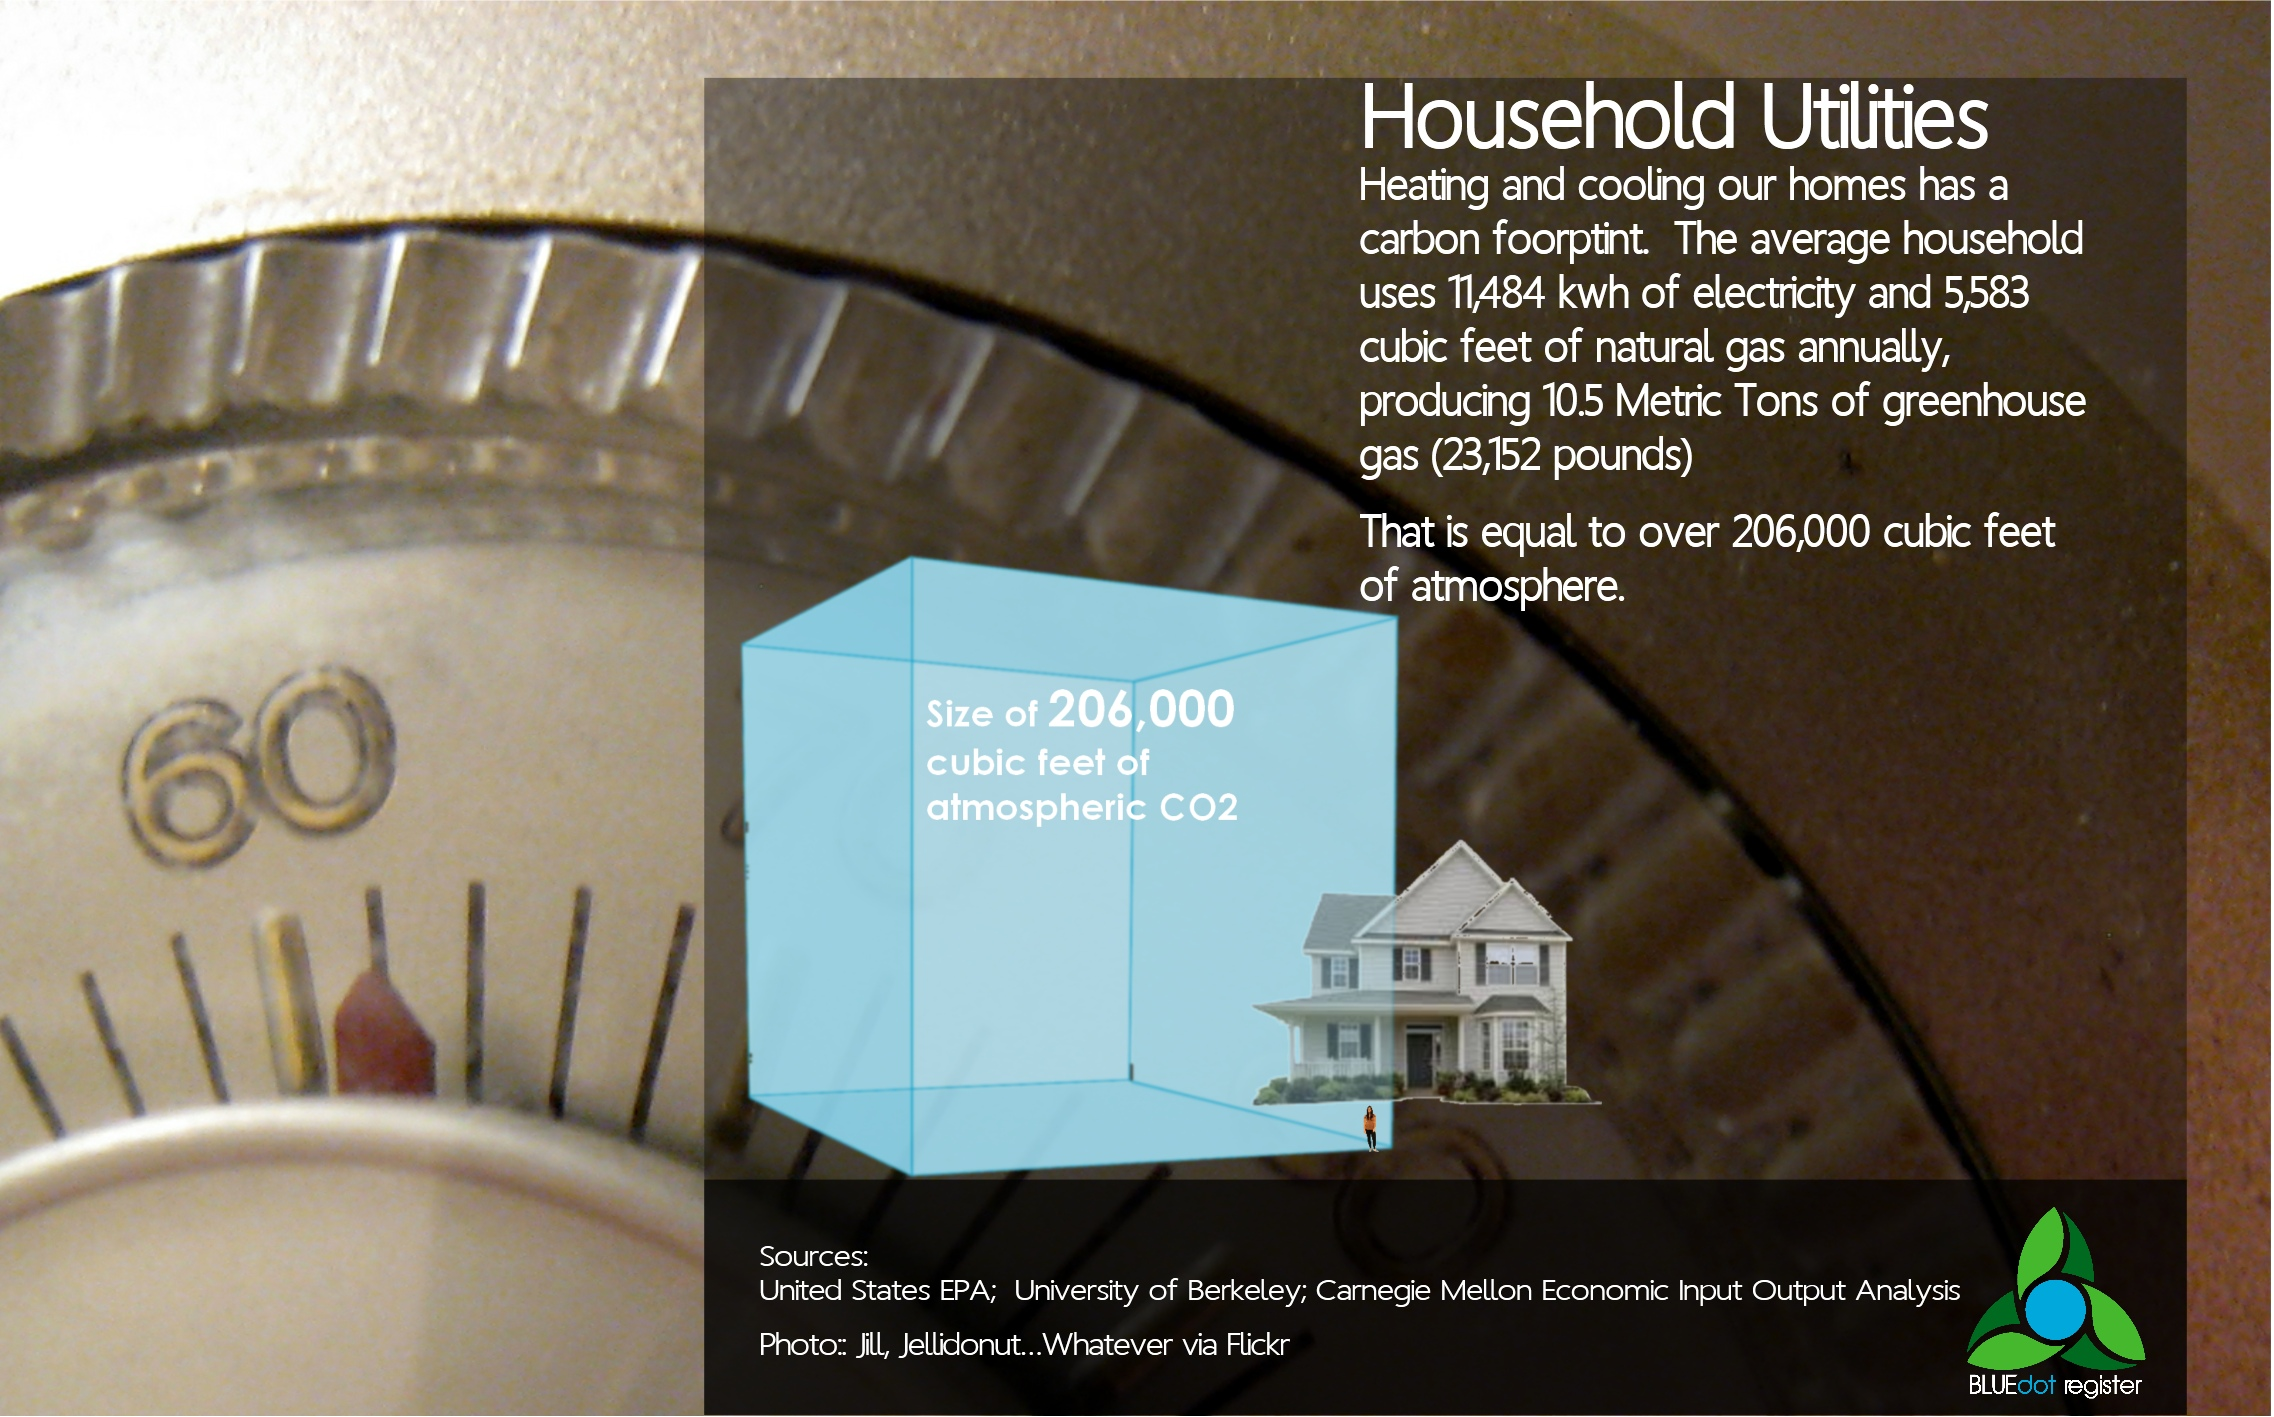 Household Utility Use Infographic.jpg